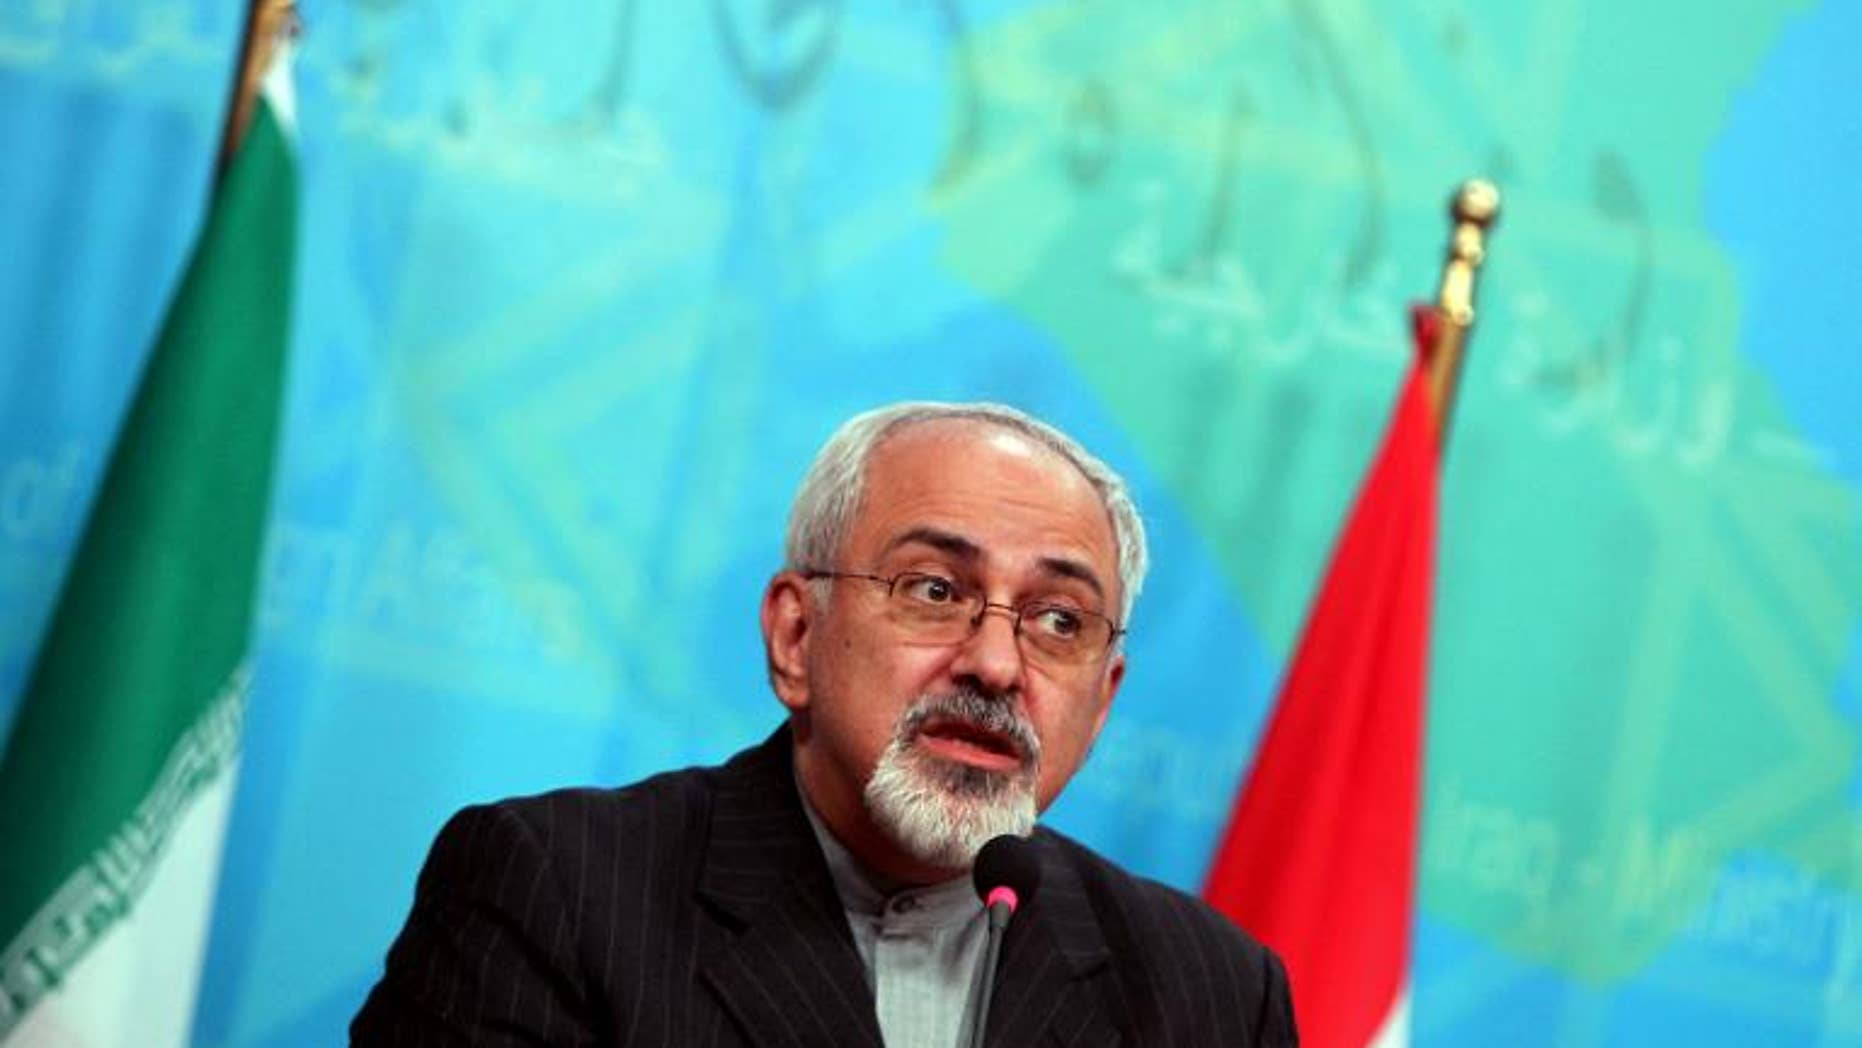 Iranian Foreign Minister Mohammad Javad Zarif speaks during a press conference in Baghdad on September 8, 2013